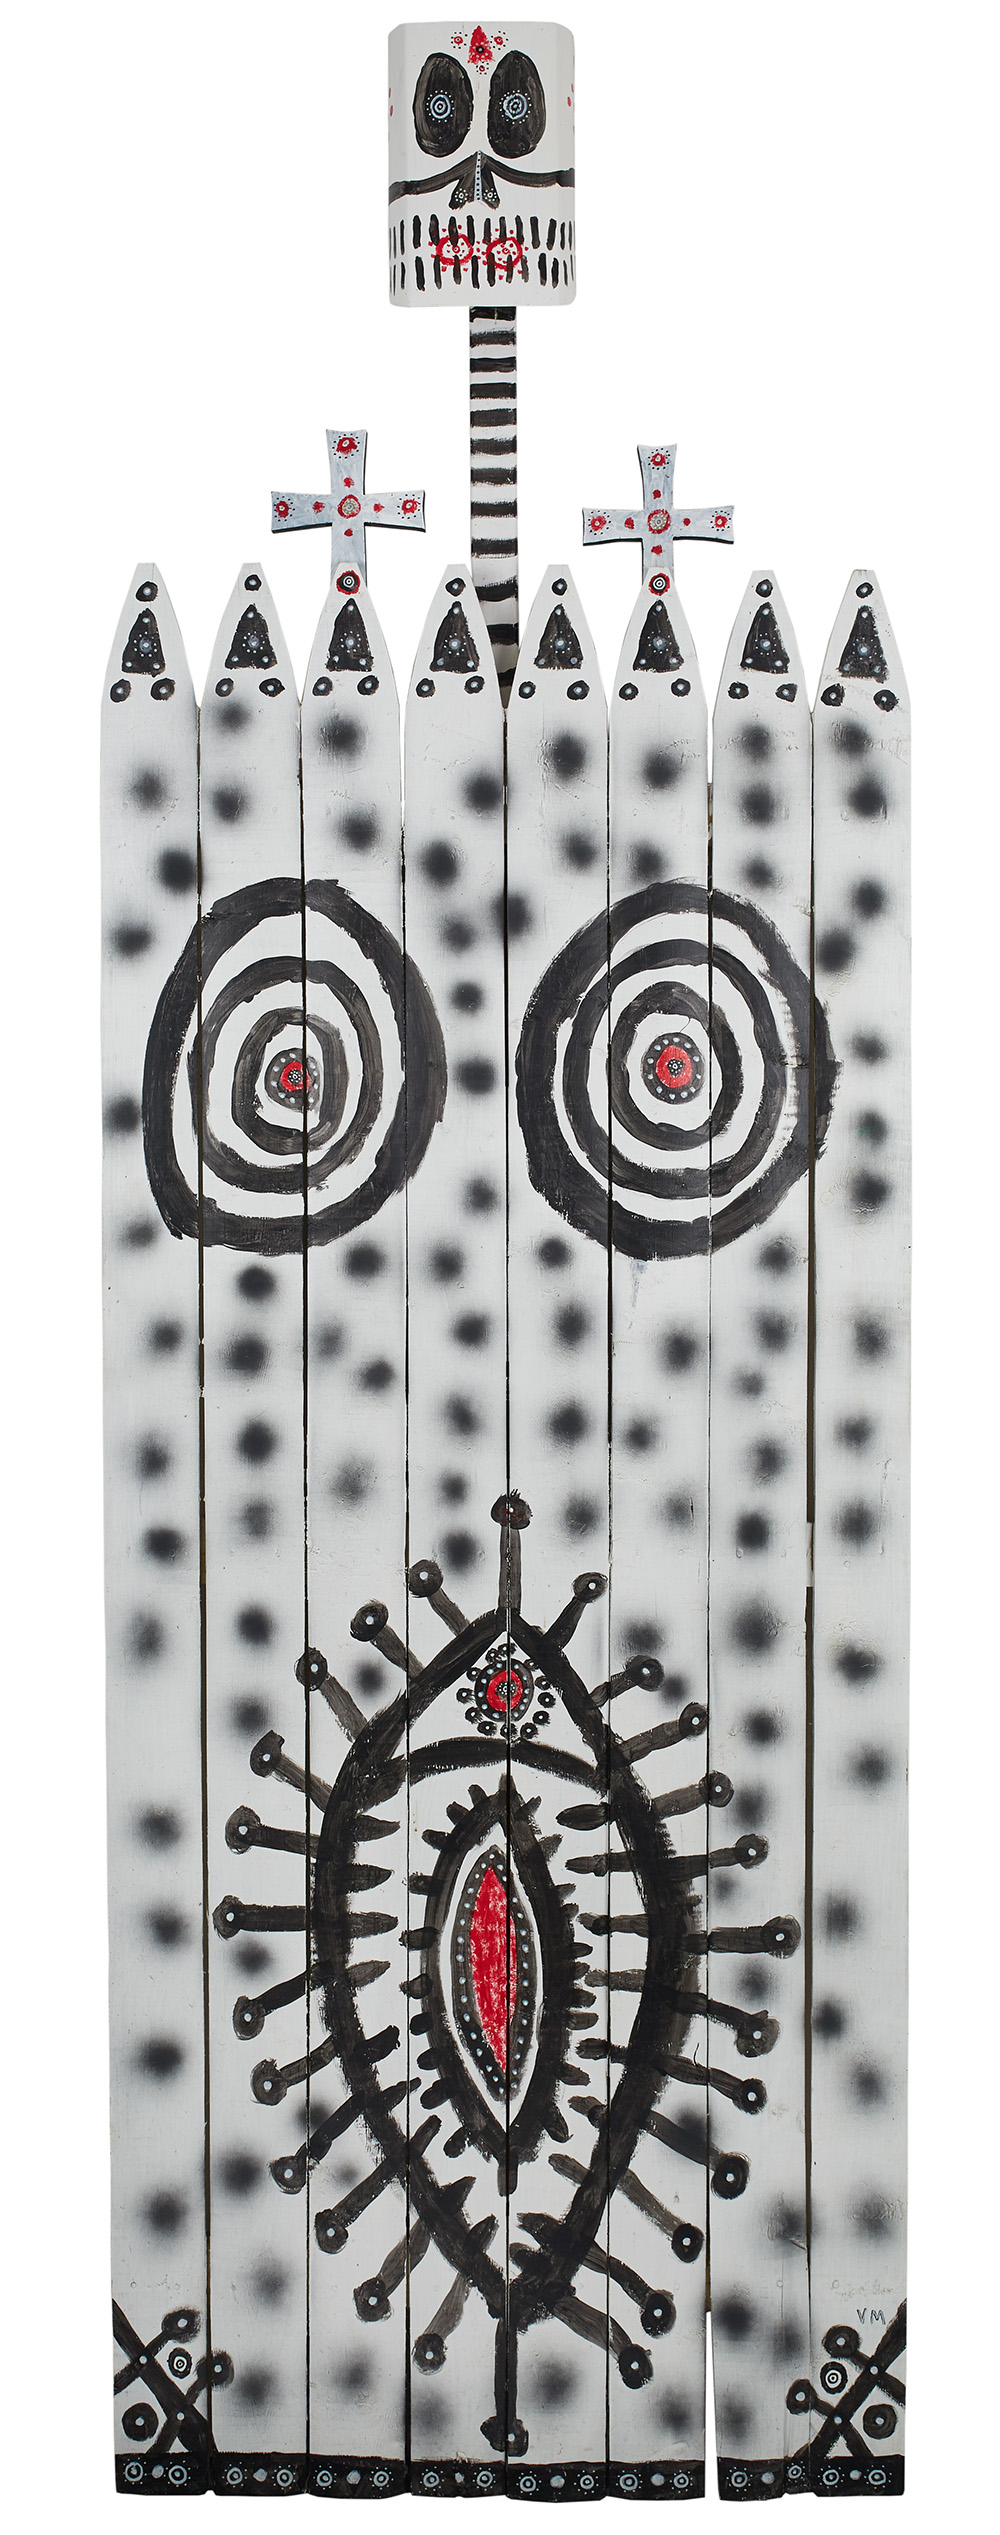 Gregory Van Maanen    Untitled  , n.d. Acrylic, spray paint on fence 89 x 29.5 x 3 inches 226.1 x 74.9 x 7.6 cm GVM 2546